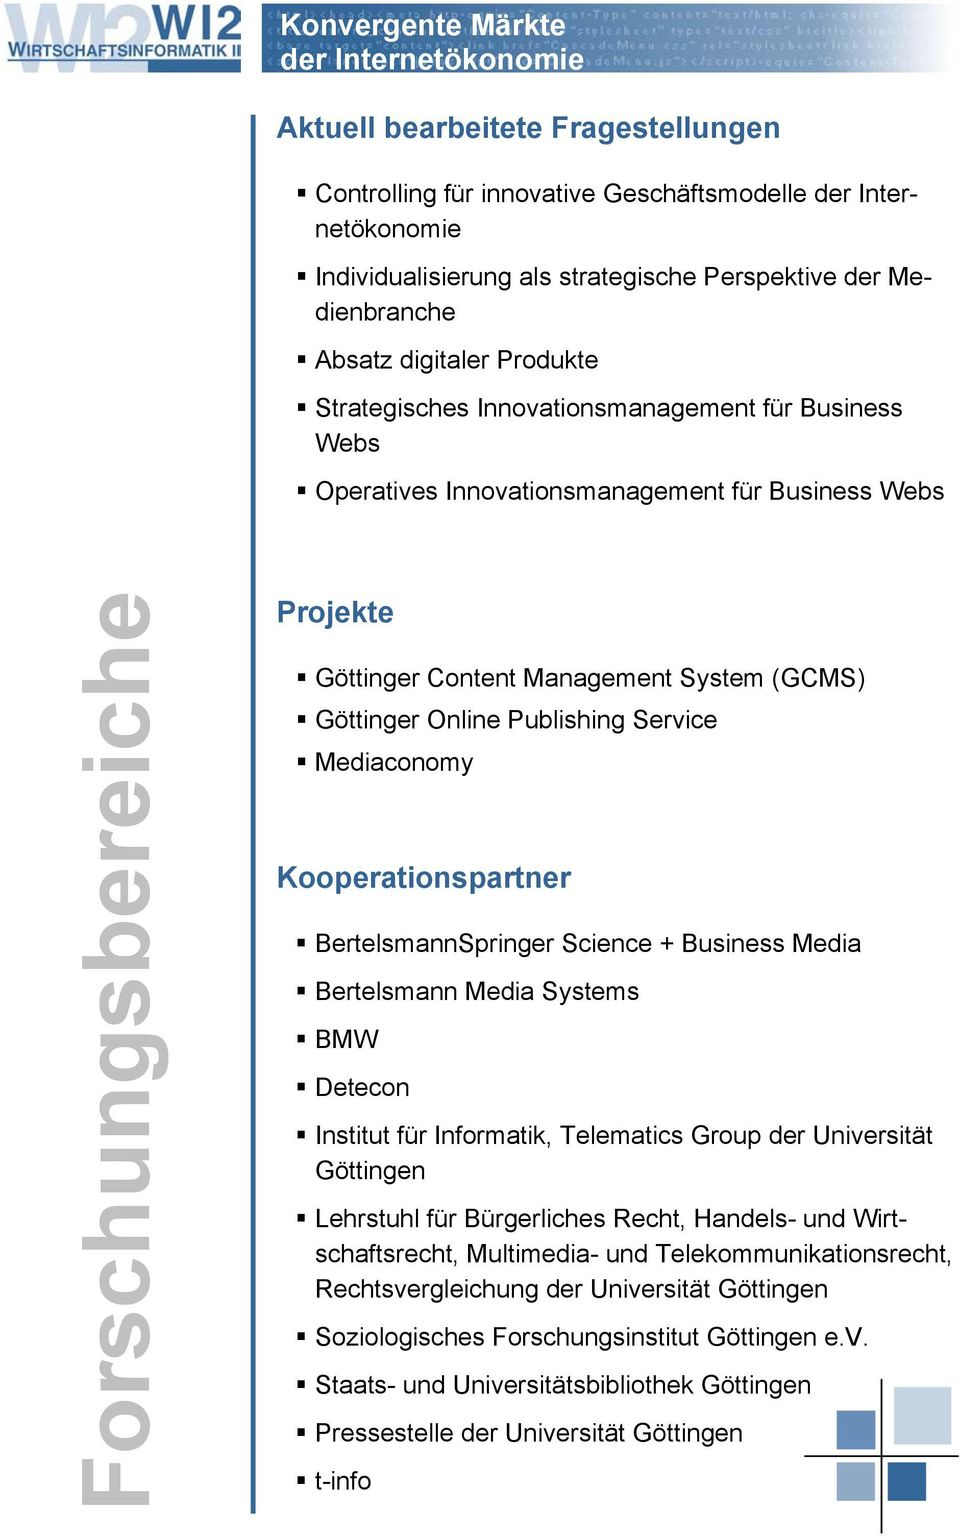 Content Management System (GCMS) Göttinger Online Publishing Service Mediaconomy Kooperationspartner BertelsmannSpringer Science + Business Media Bertelsmann Media Systems BMW Detecon Institut für